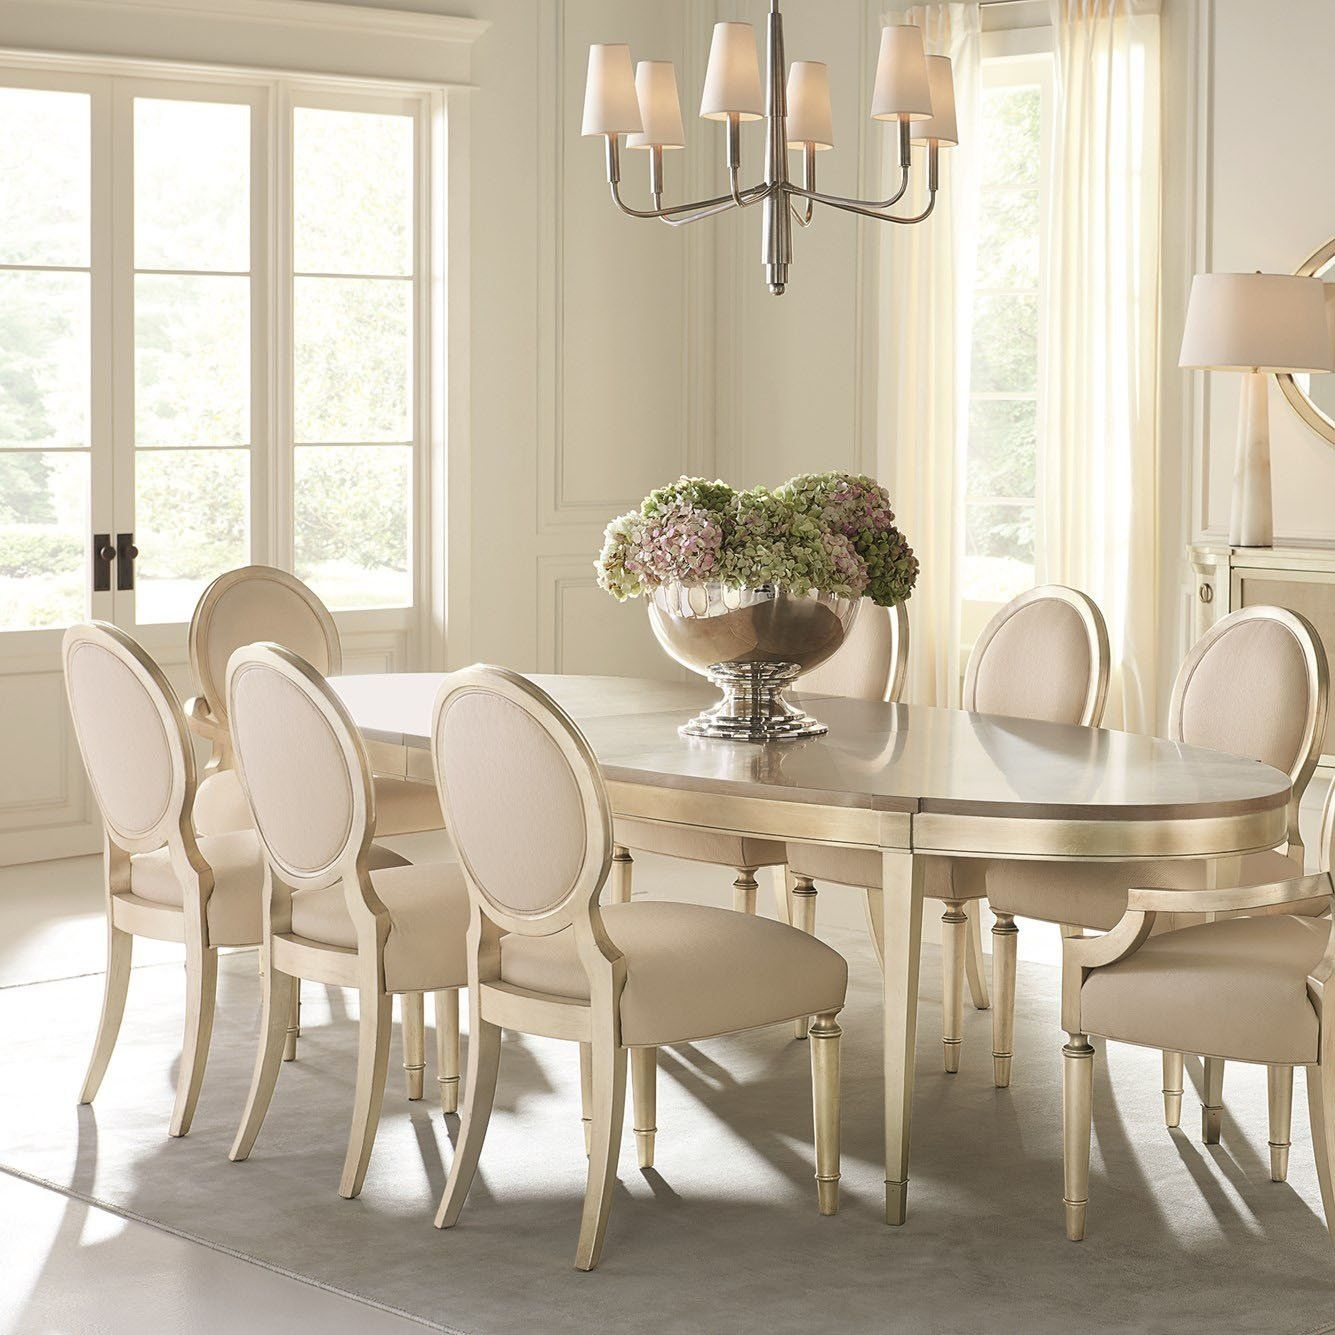 Caracole A House Favorite Dining Table In 2021 Dinning Room Table Decor Round Dining Room Sets Oval Table Dining